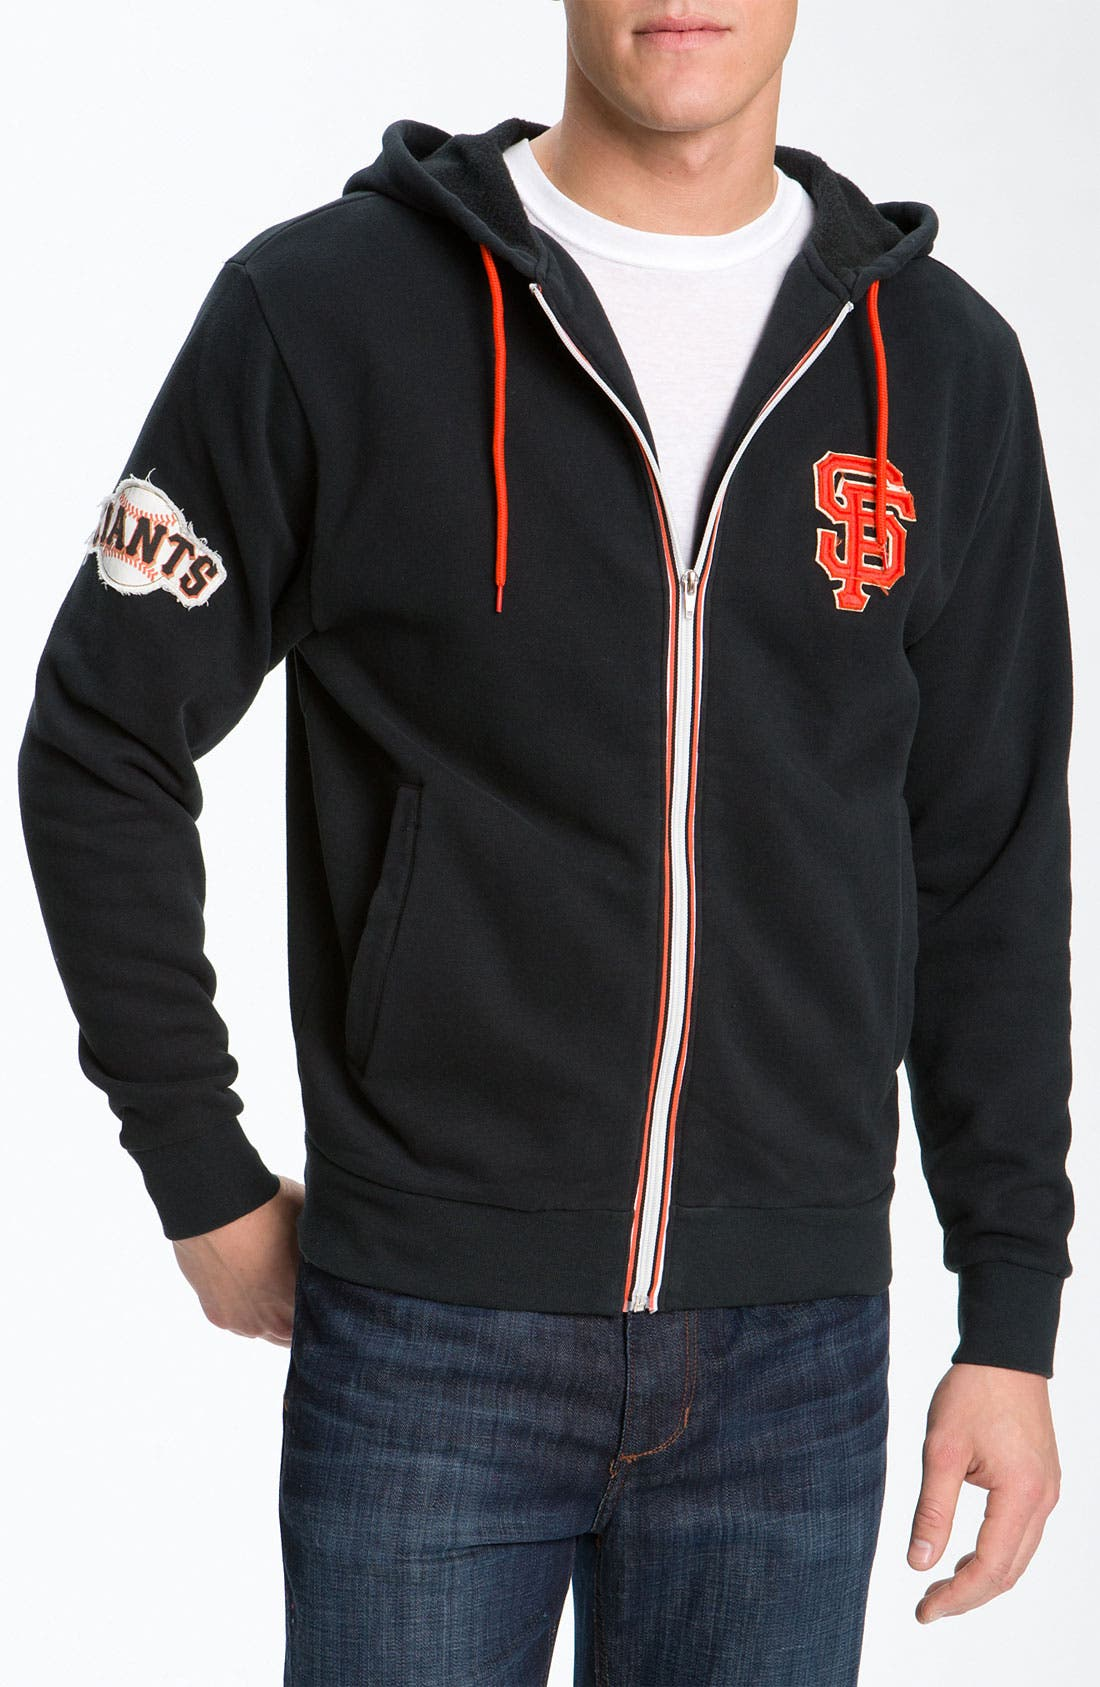 Alternate Image 1 Selected - Wright & Ditson 'San Francisco Giants' Hoodie